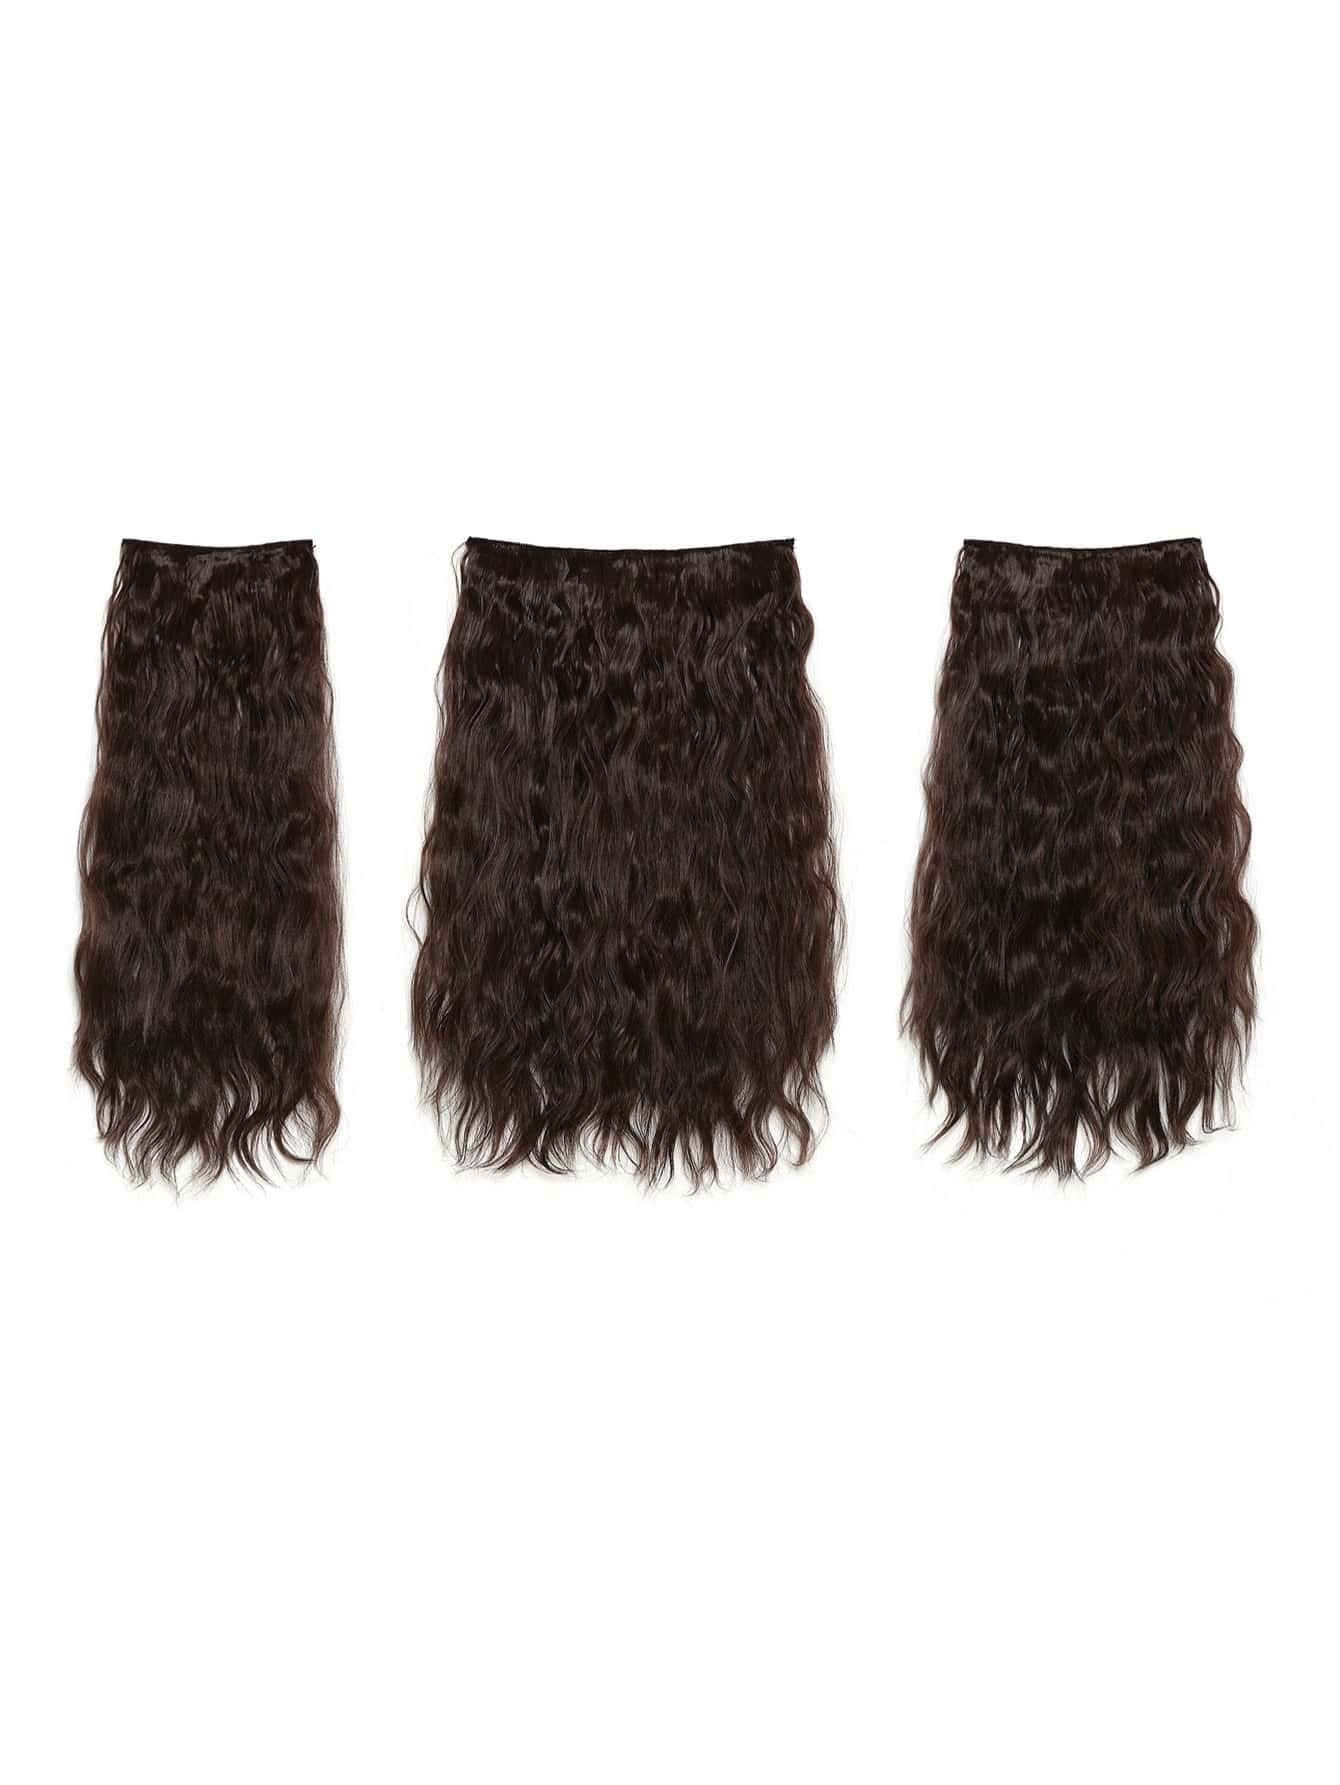 Image of Black Cherry Clip In Curly Hair Extension 3pcs